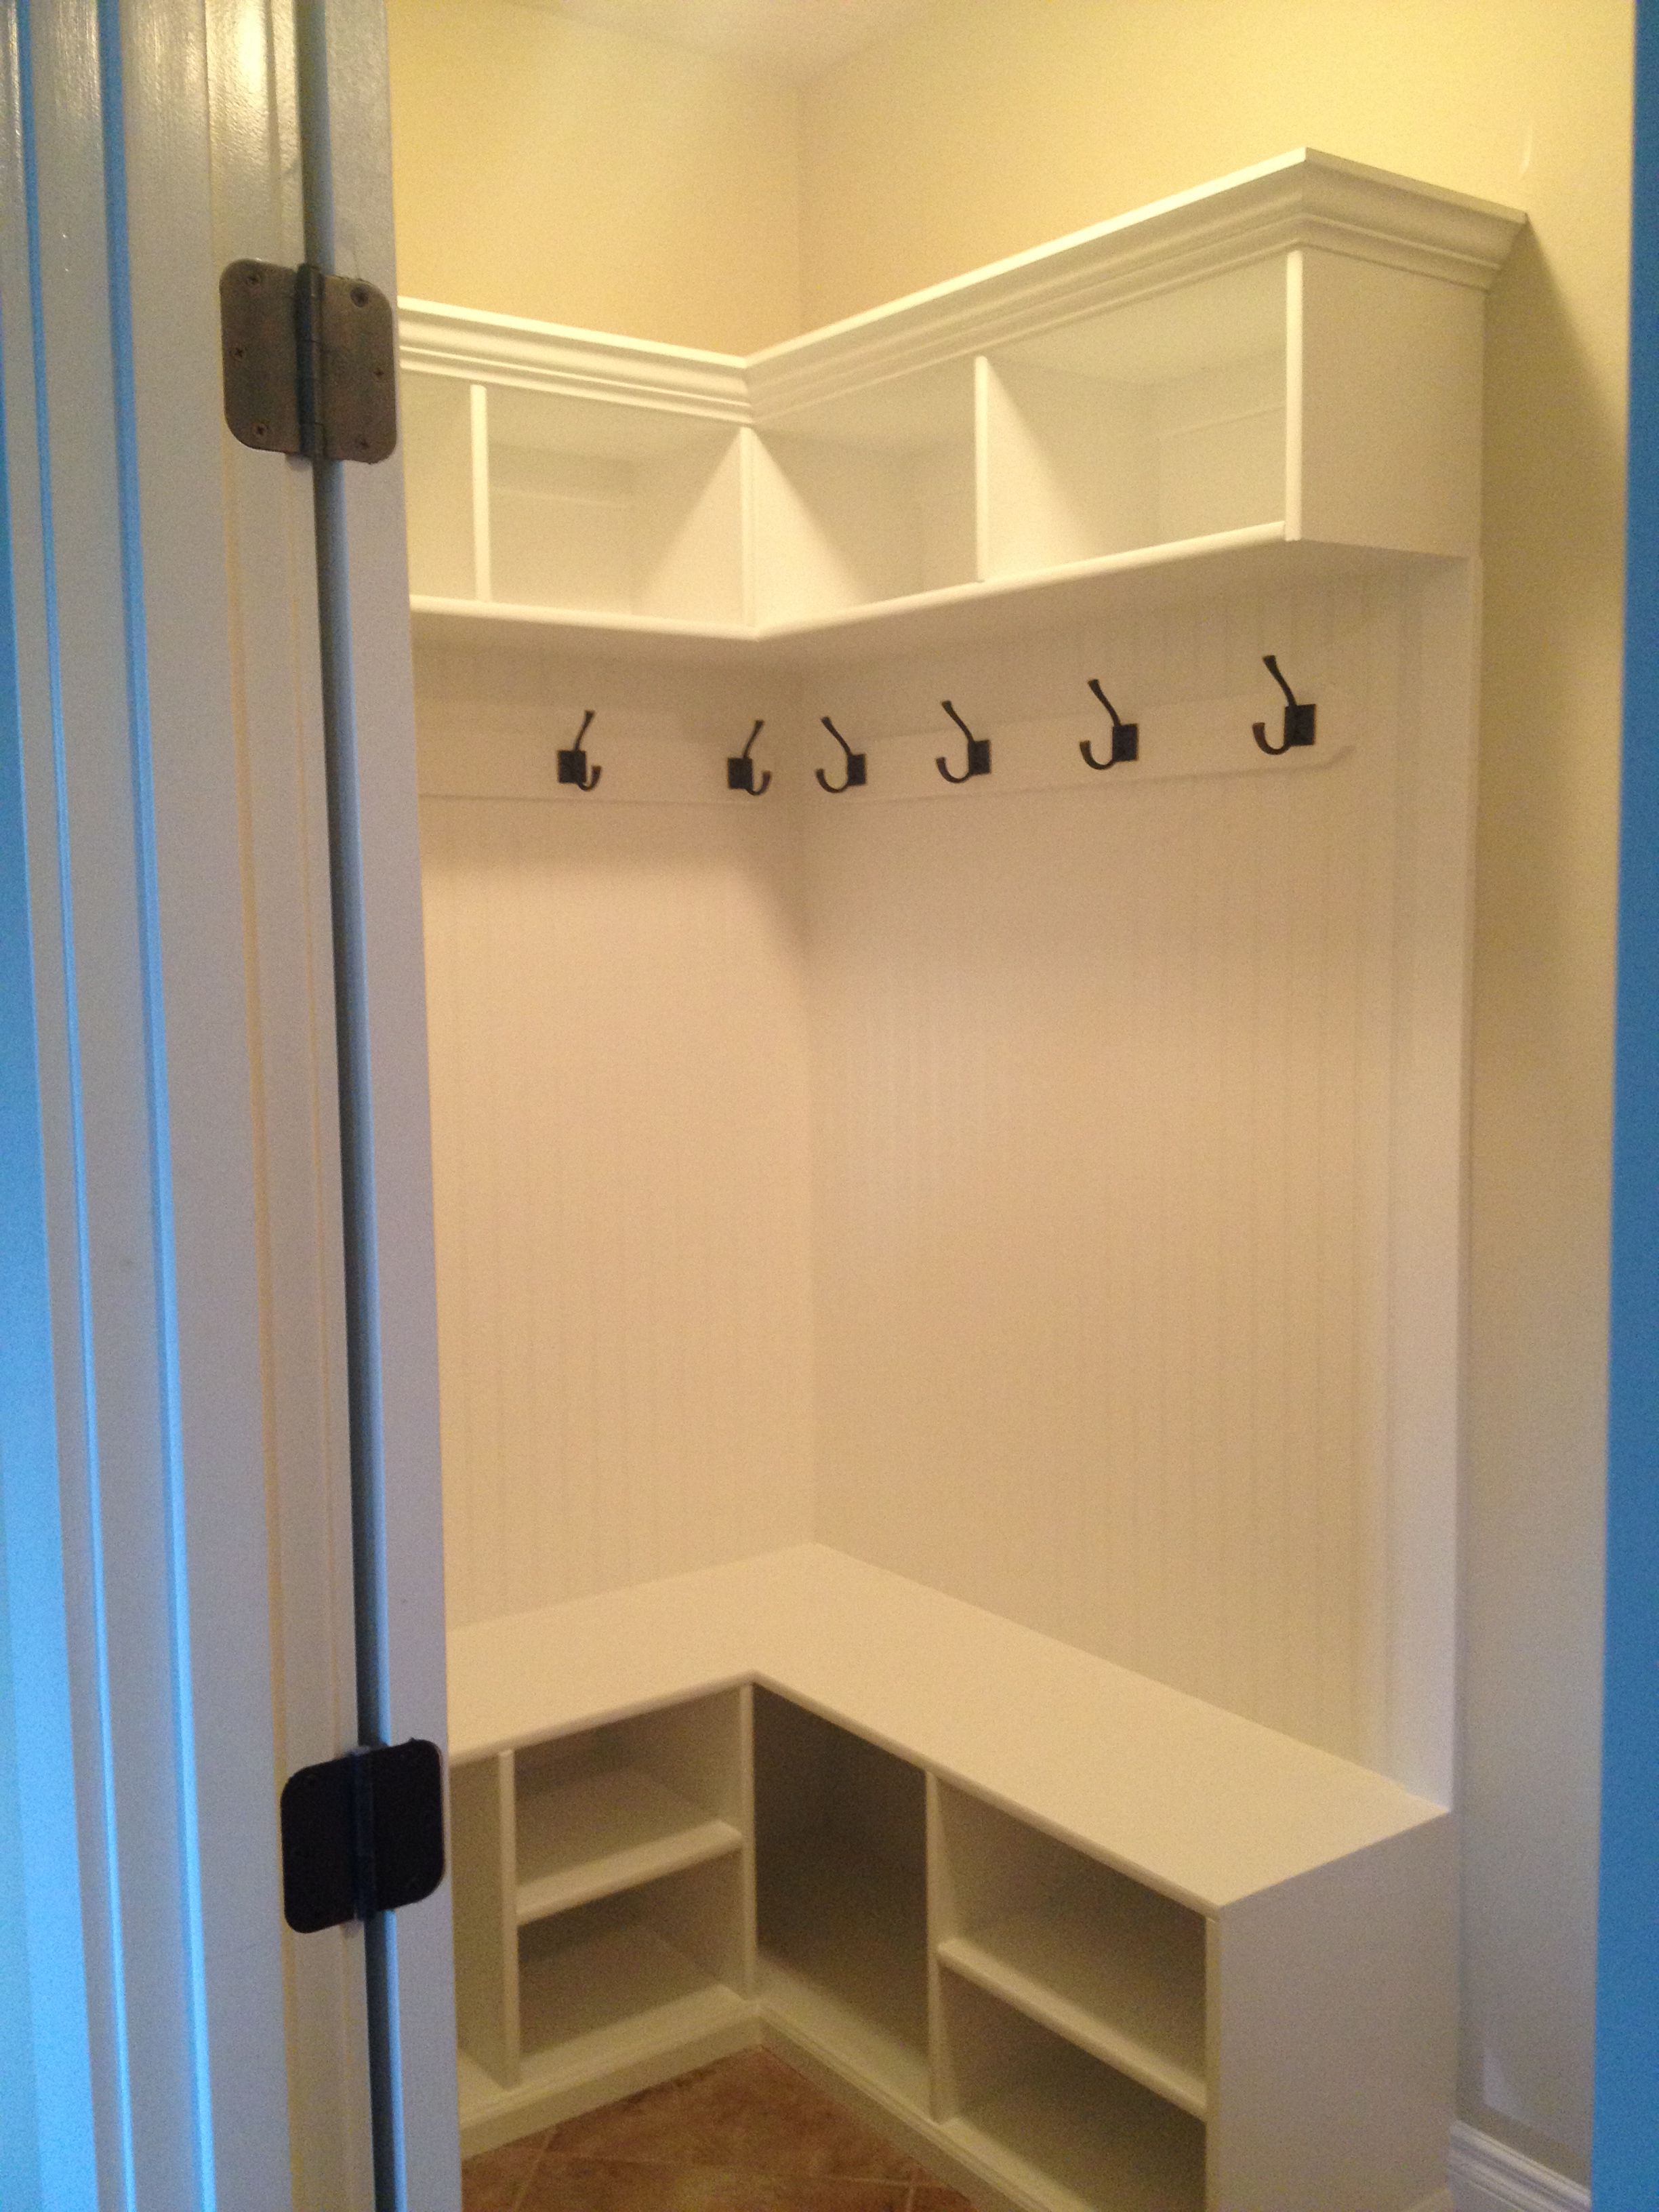 Pin By Shawn Flanagan On Favorites Mudroom Cubbies Mud Room Storage Kitchen Entryway Ideas